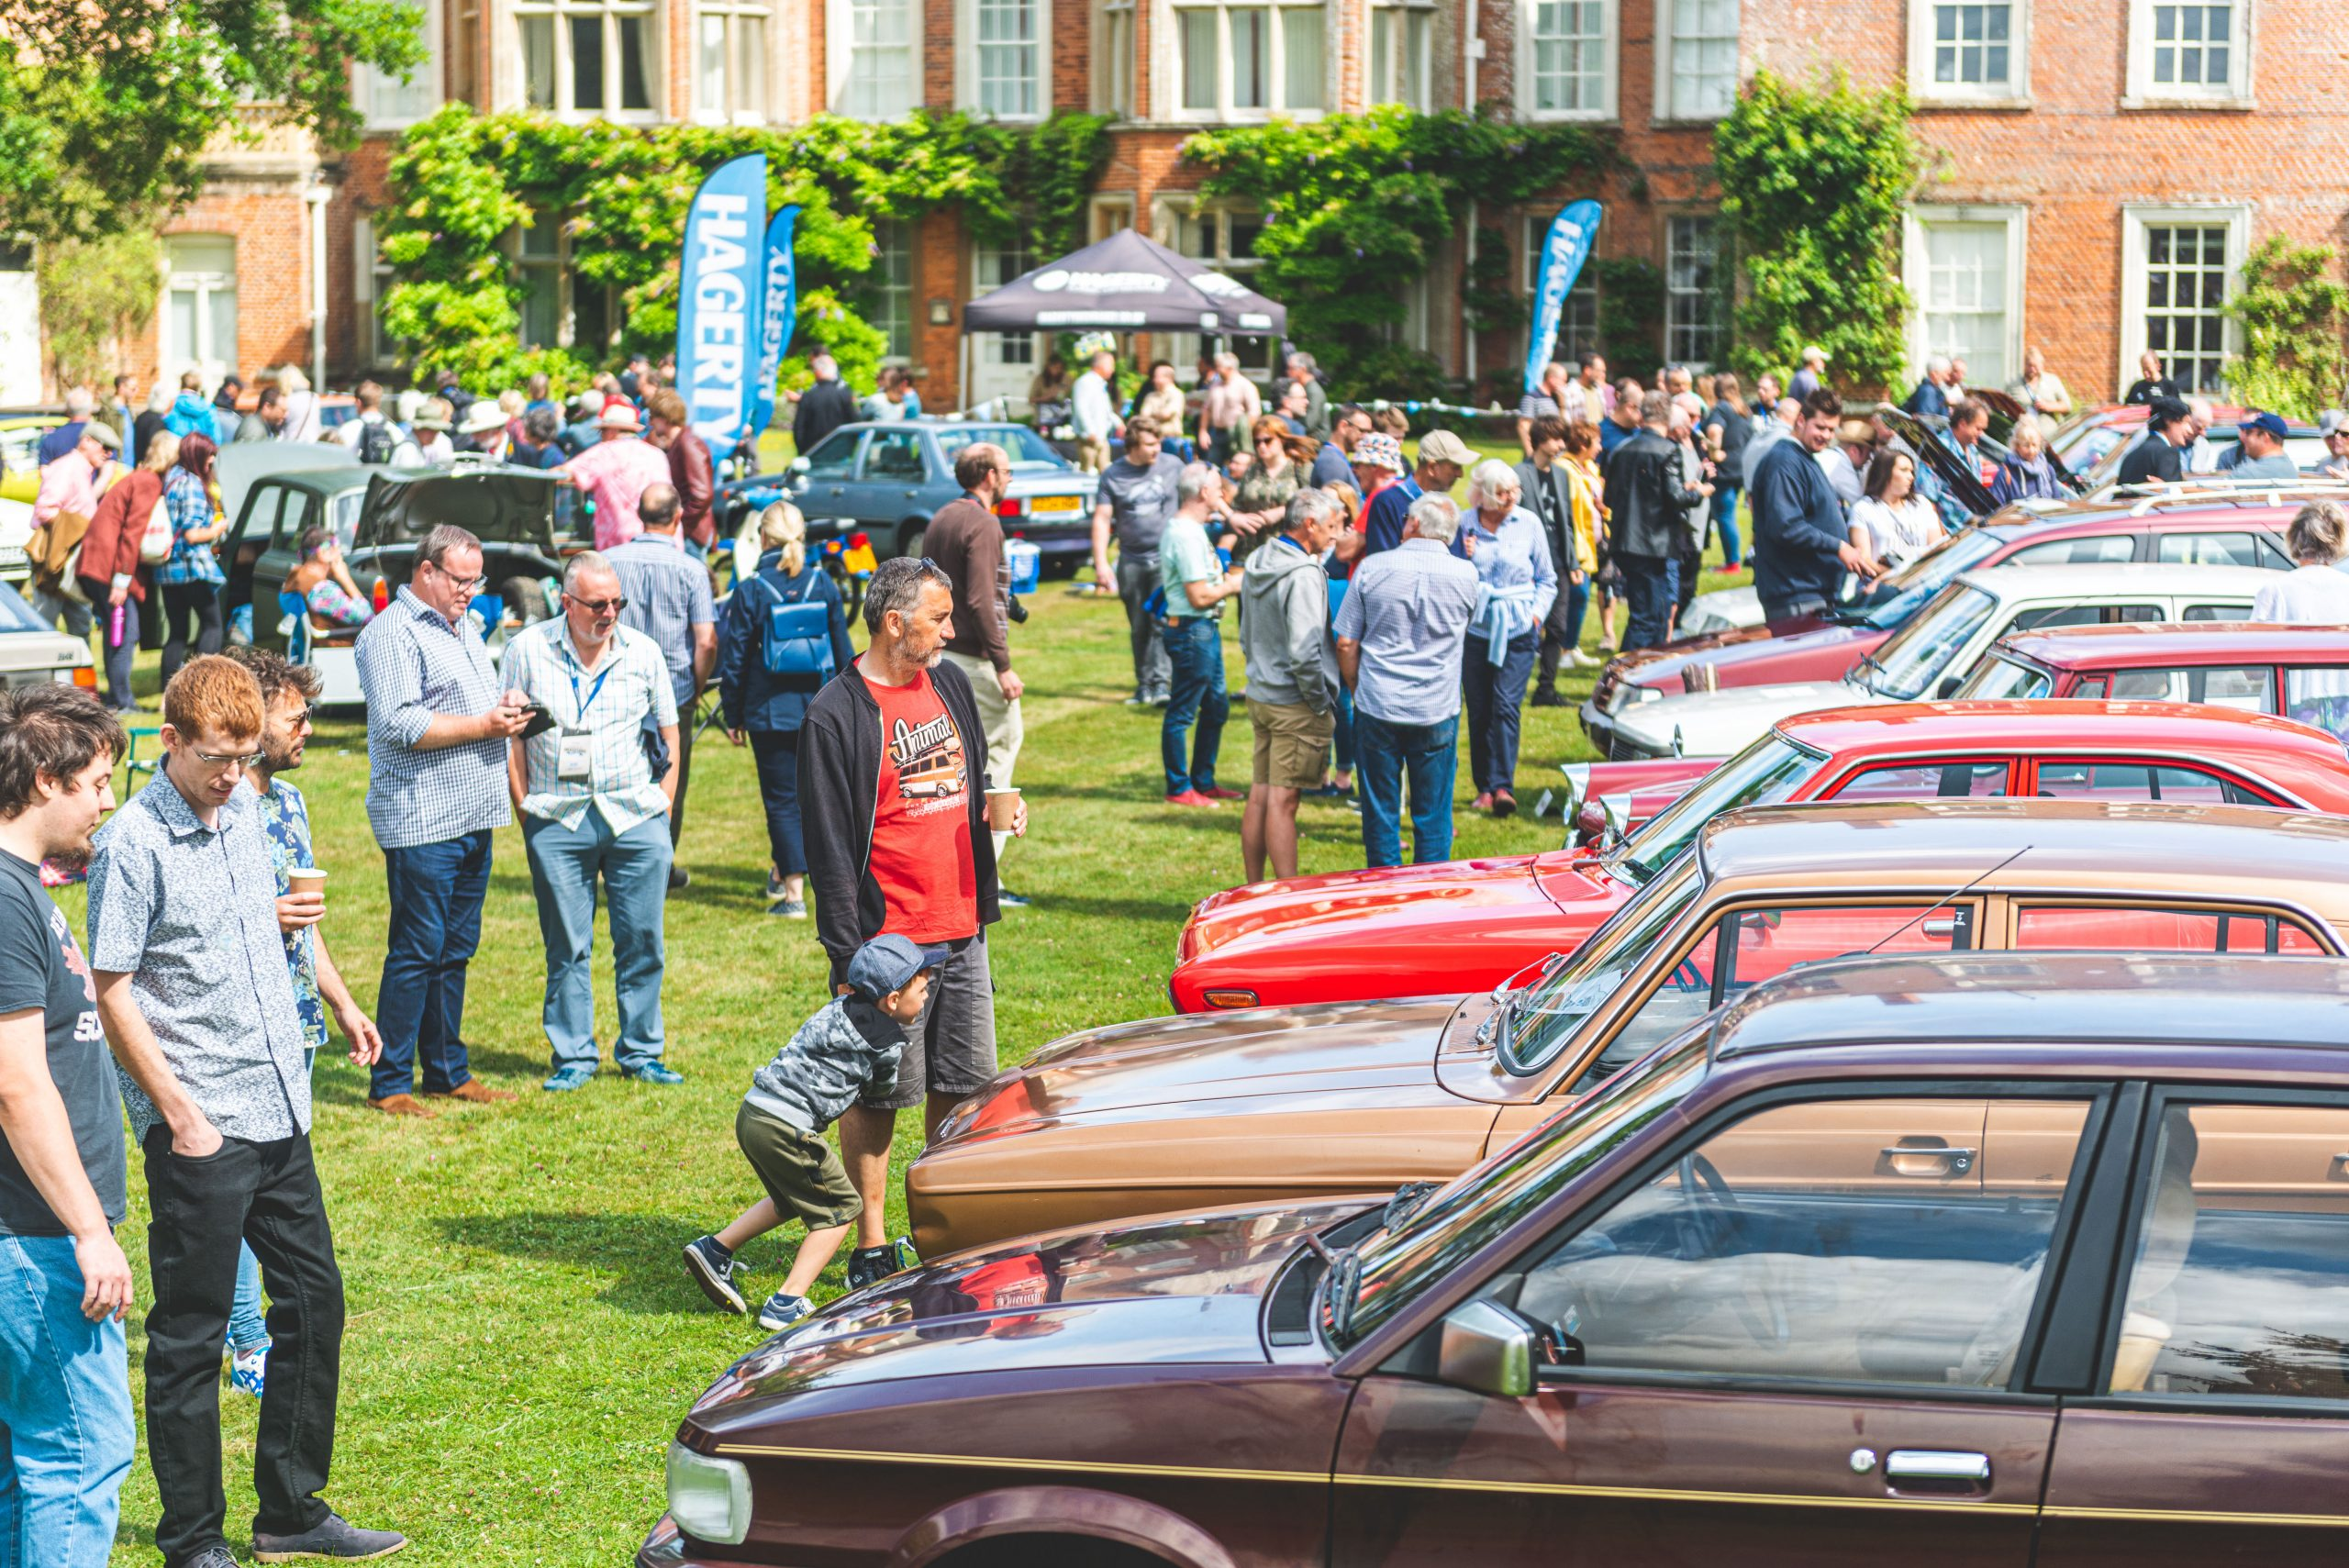 UK Covid roadmap: How summer motoring events will be affected